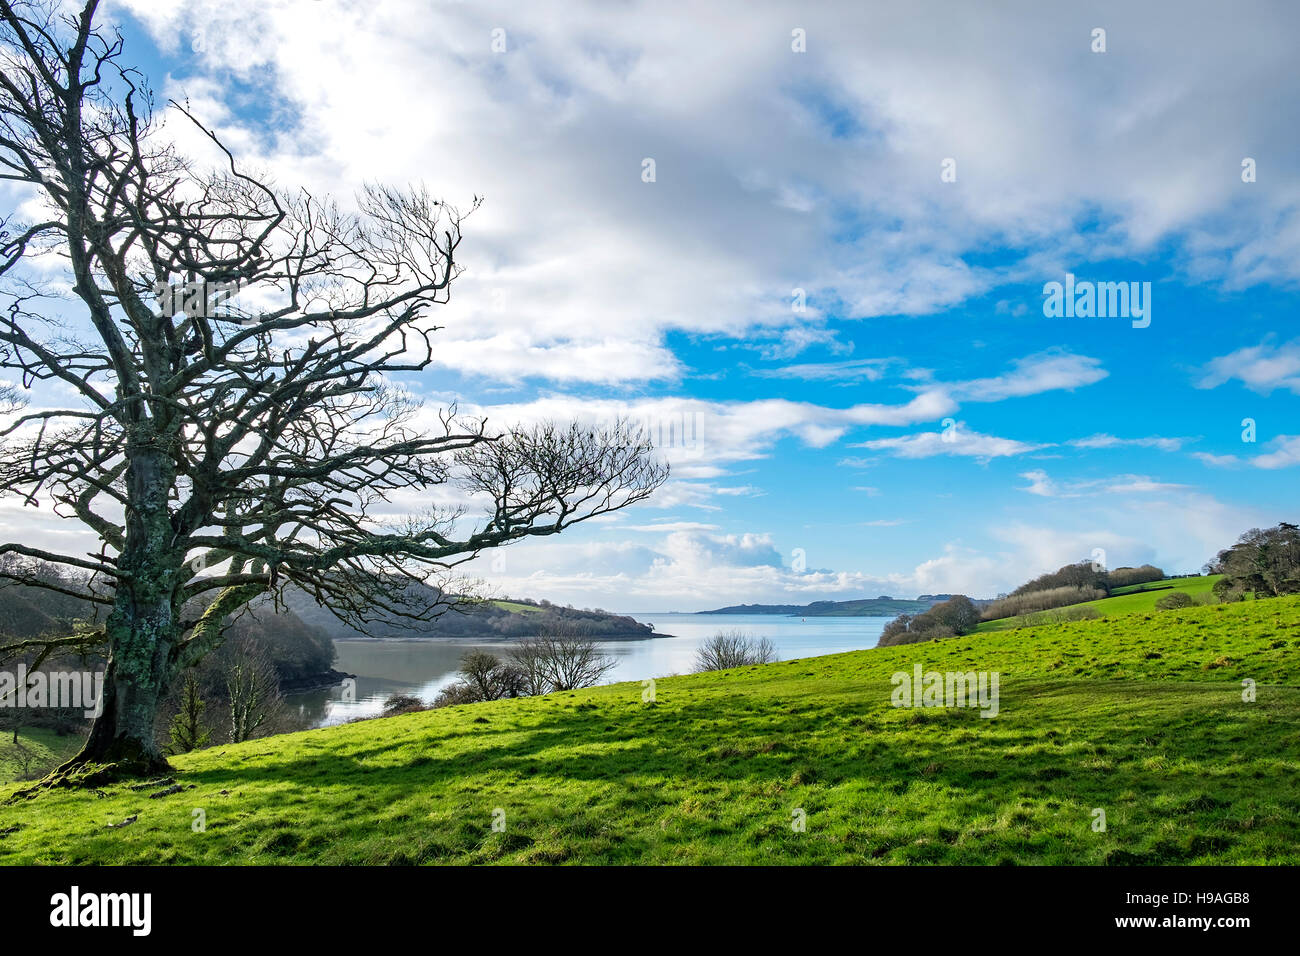 a view looking towards the 'Carrick Roads' on the river Fal in Cornwall, England, UK - Stock Image